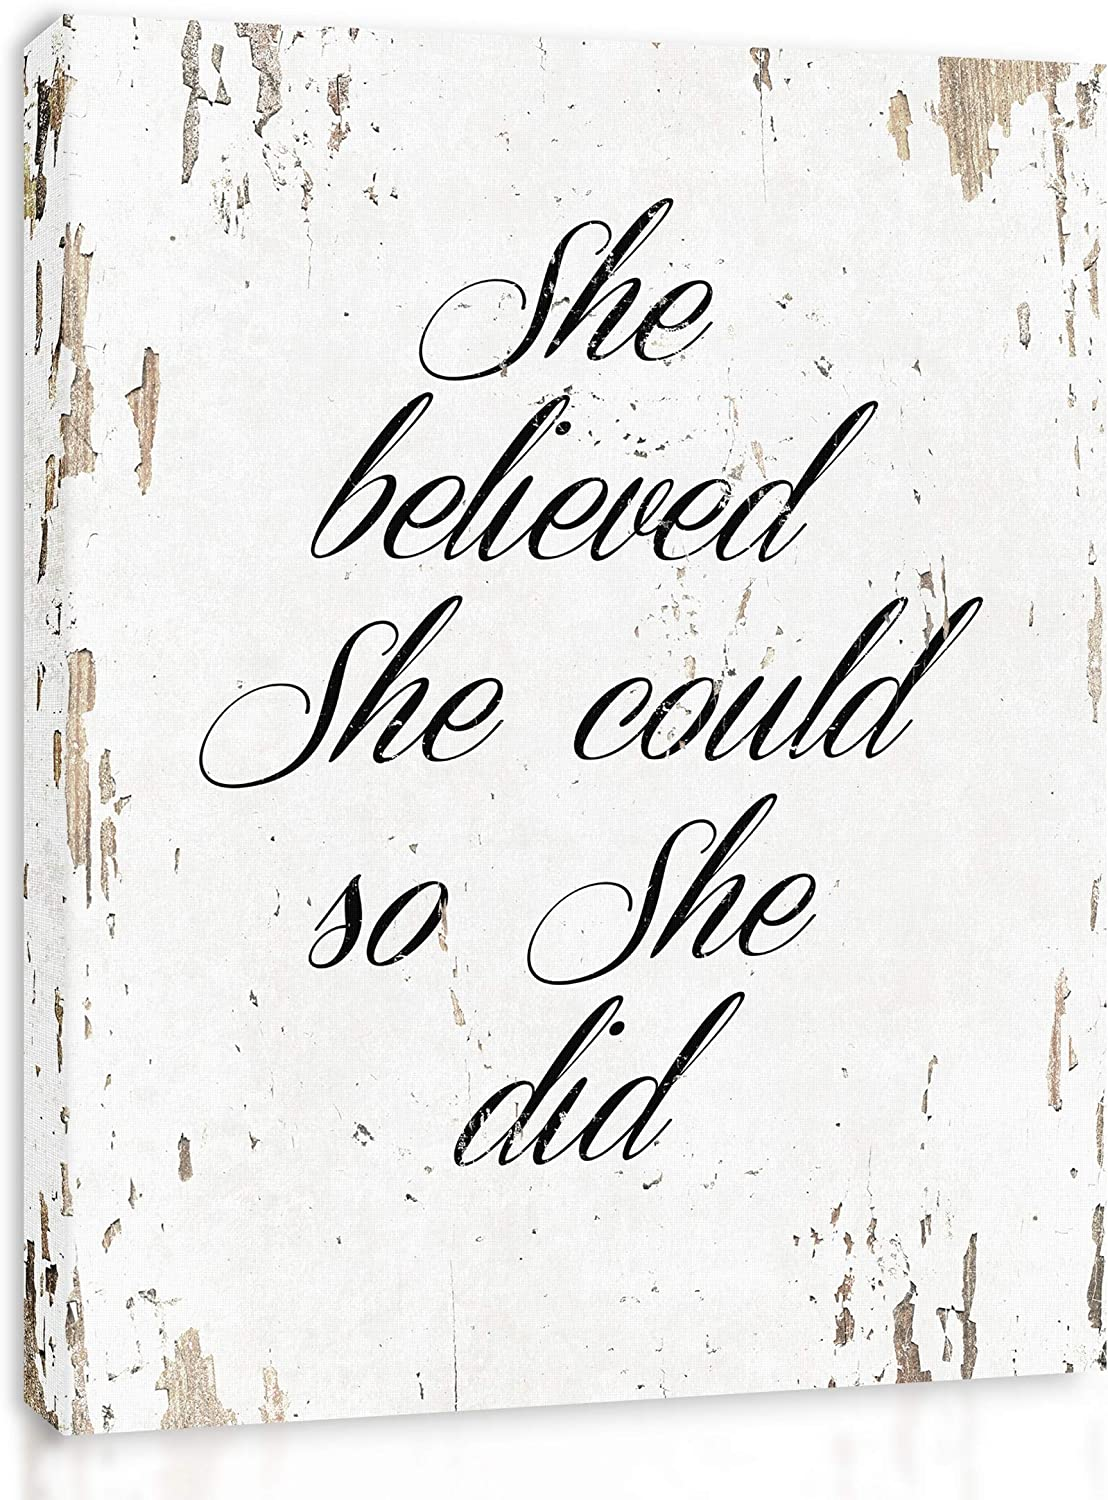 She Believed She Could So She Did - Framed - Quote Motivational Wall Art Canvas Print Home Decor, Gallery Wrap Inner Frame, White, 7x9